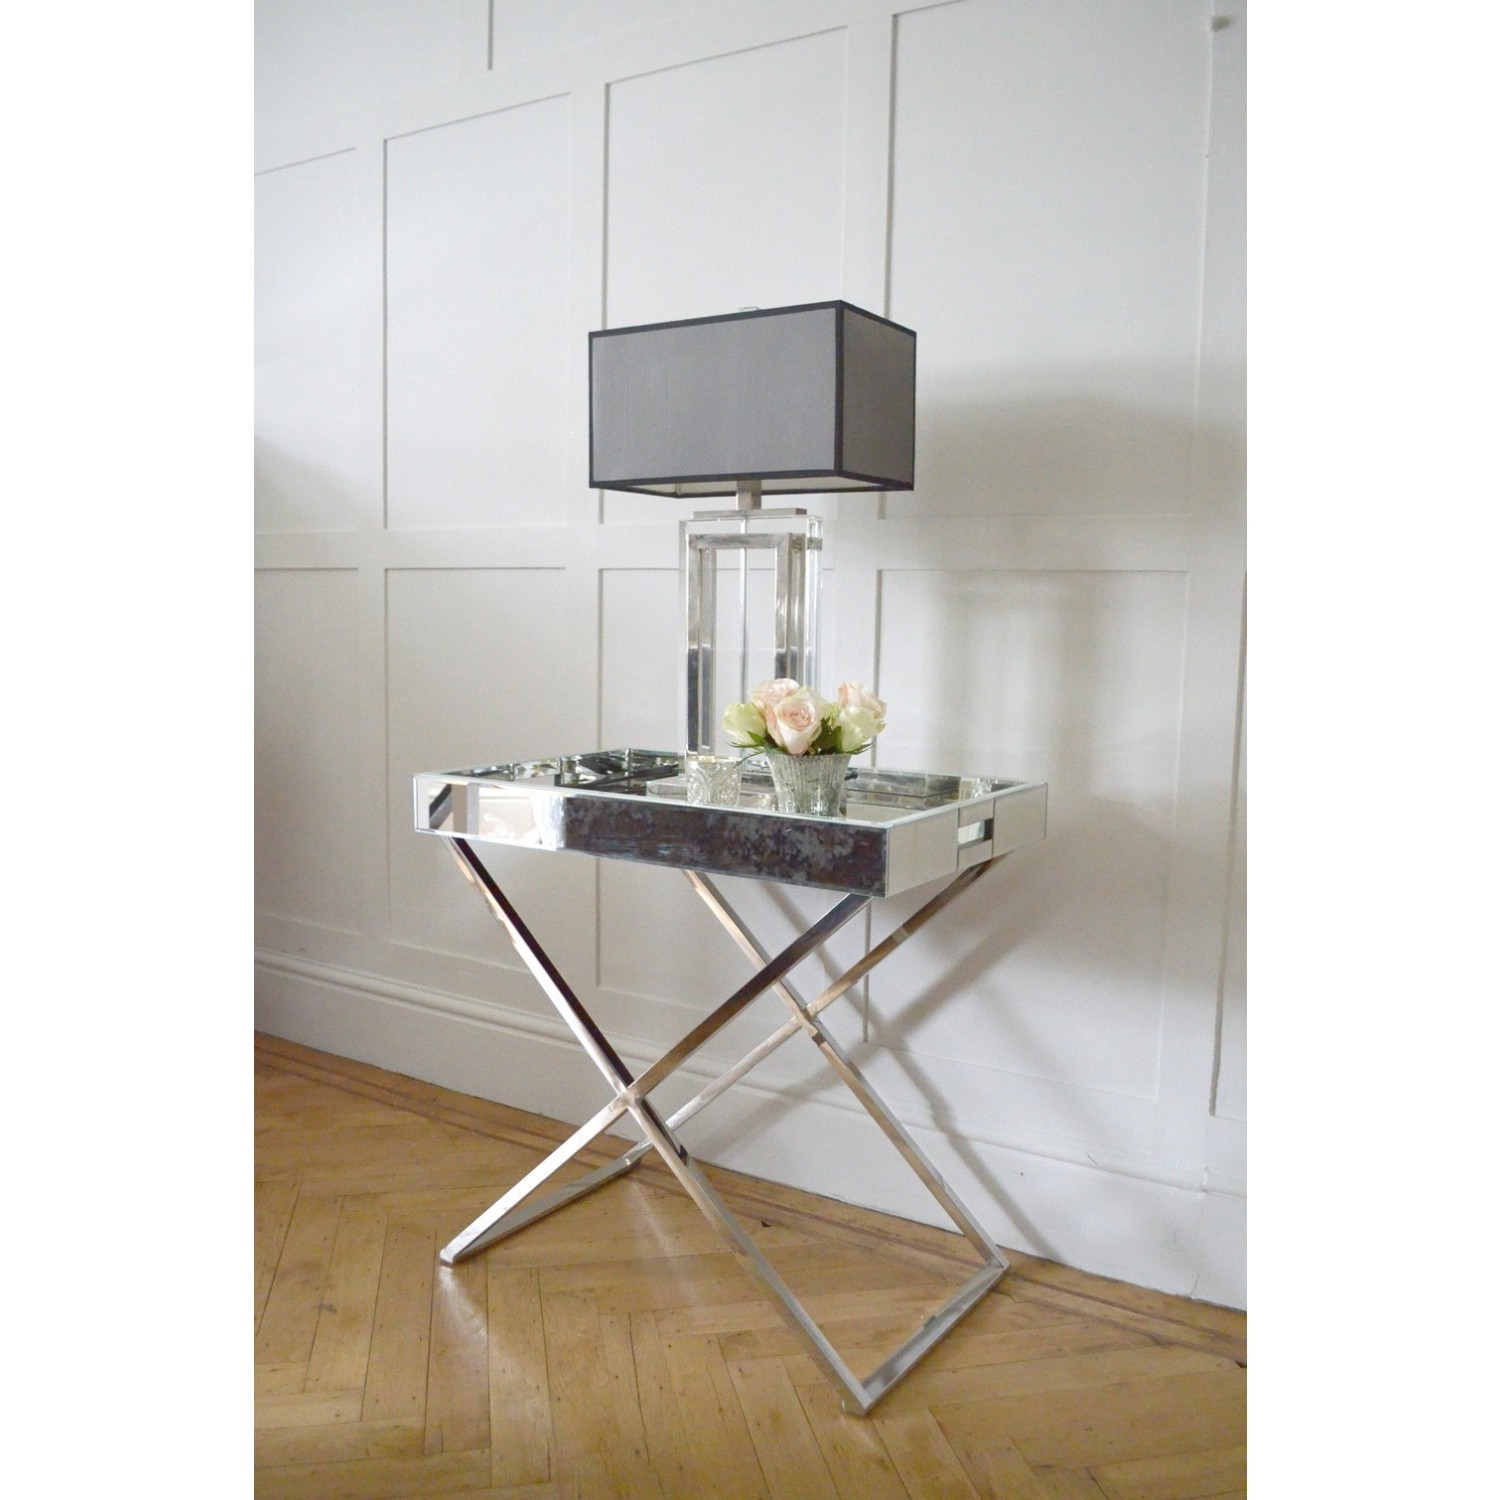 frenchies glamour mirrored side table tables round ikea monarch accent dining set black and gold console clear end target ott tabletop gas grill small telephone chair patio